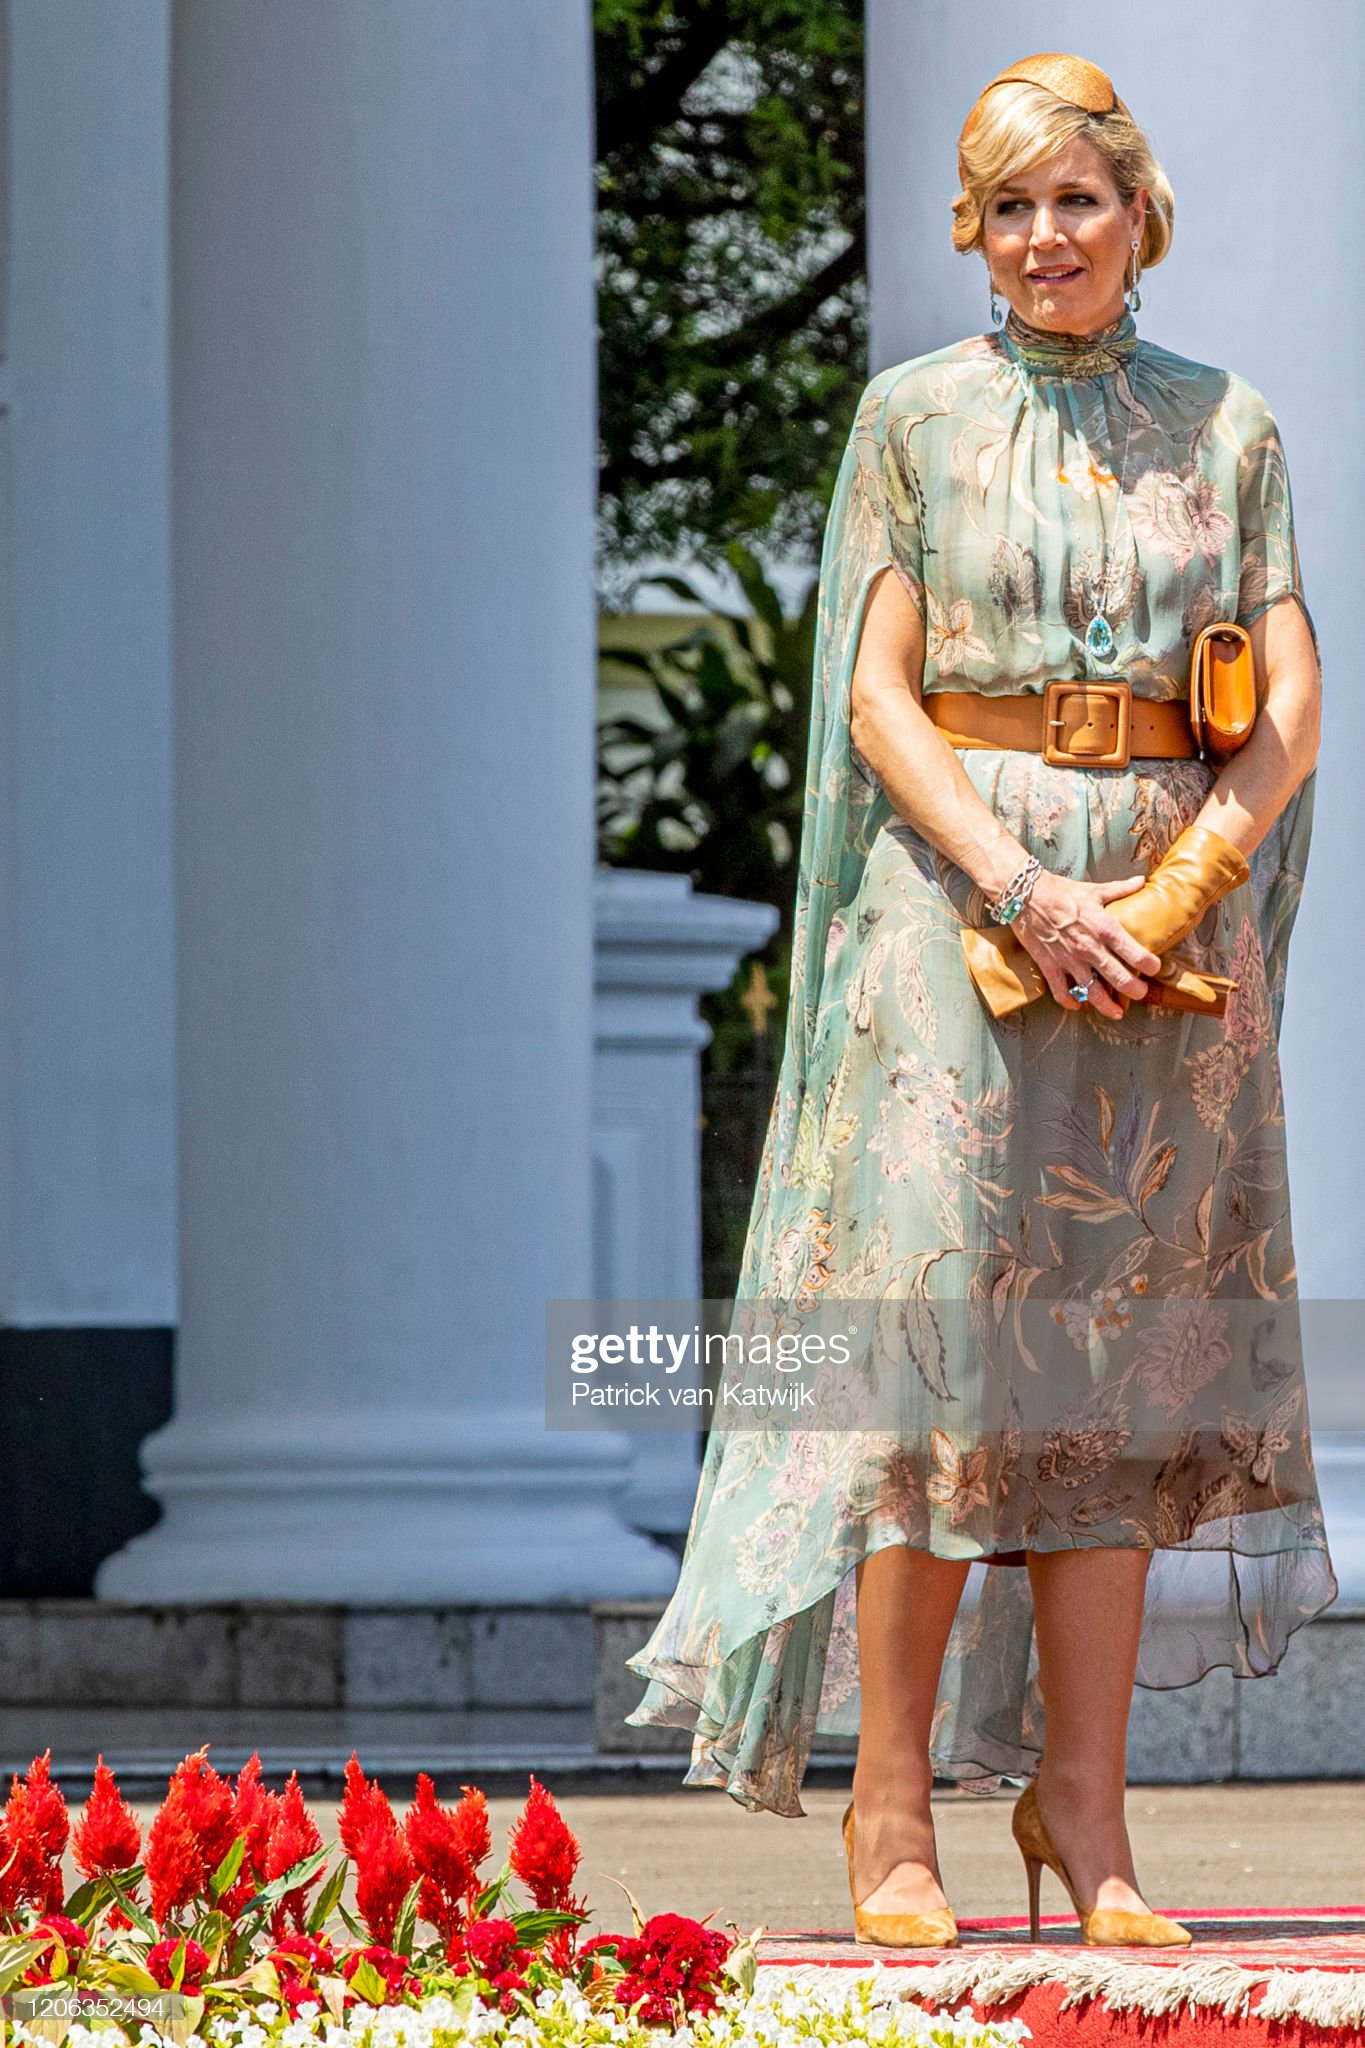 https://media.gettyimages.com/photos/queen-maxima-of-the-netherlands-is-welcomed-by-president-jcand-his-picture-id1206352494?s=2048x2048